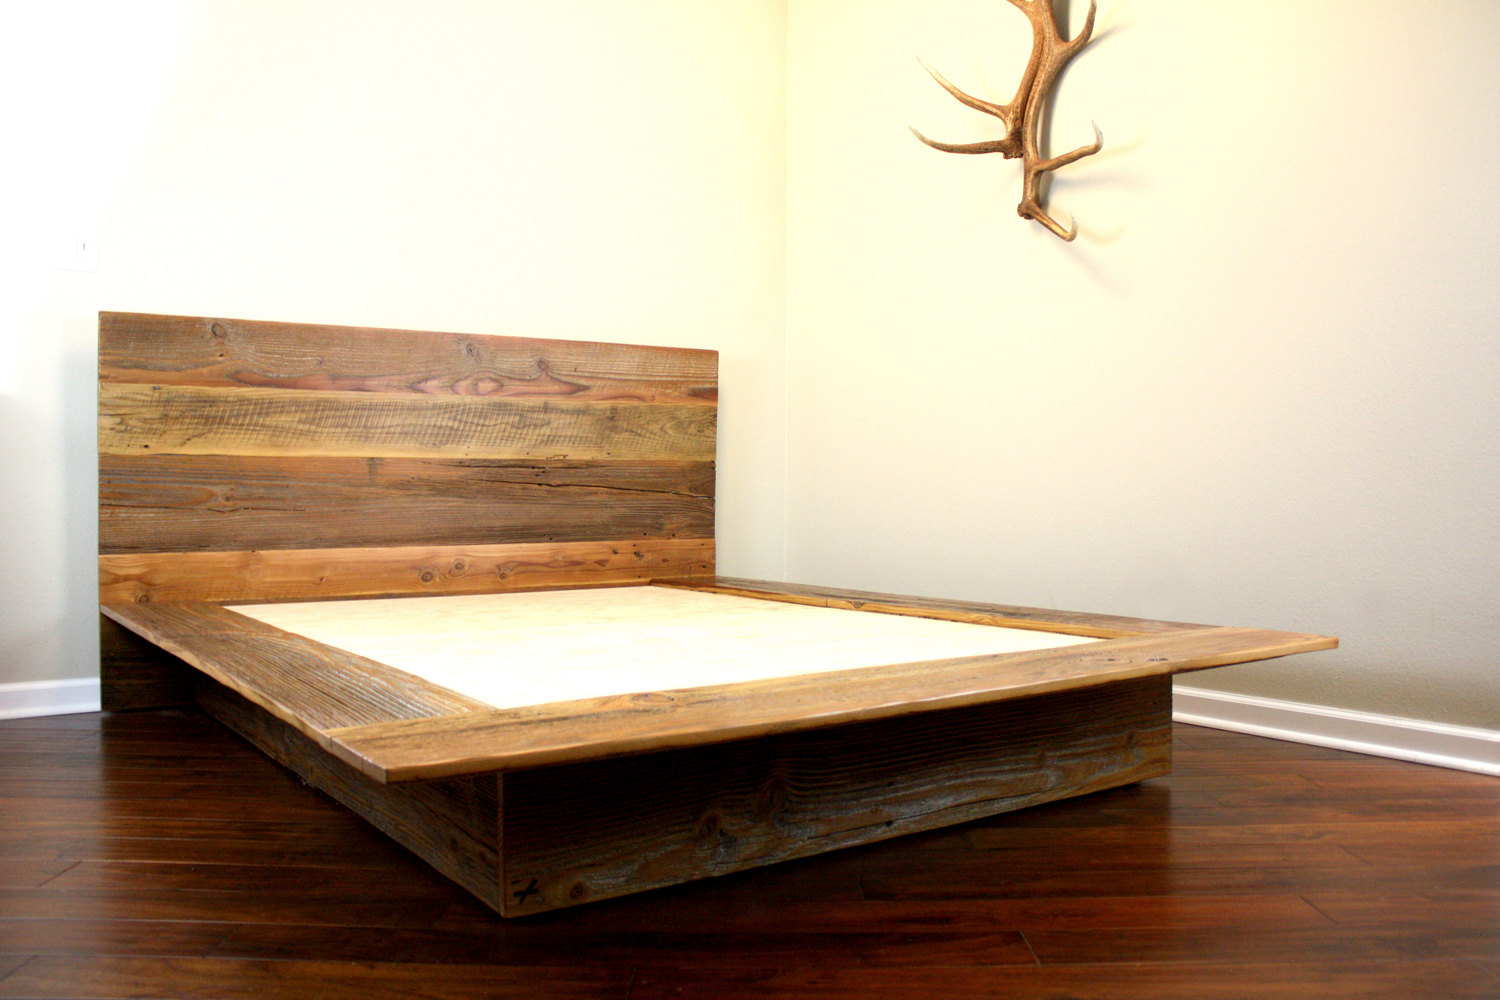 Minimalist Platform Bed: Designs and Pictures – HomesFeed